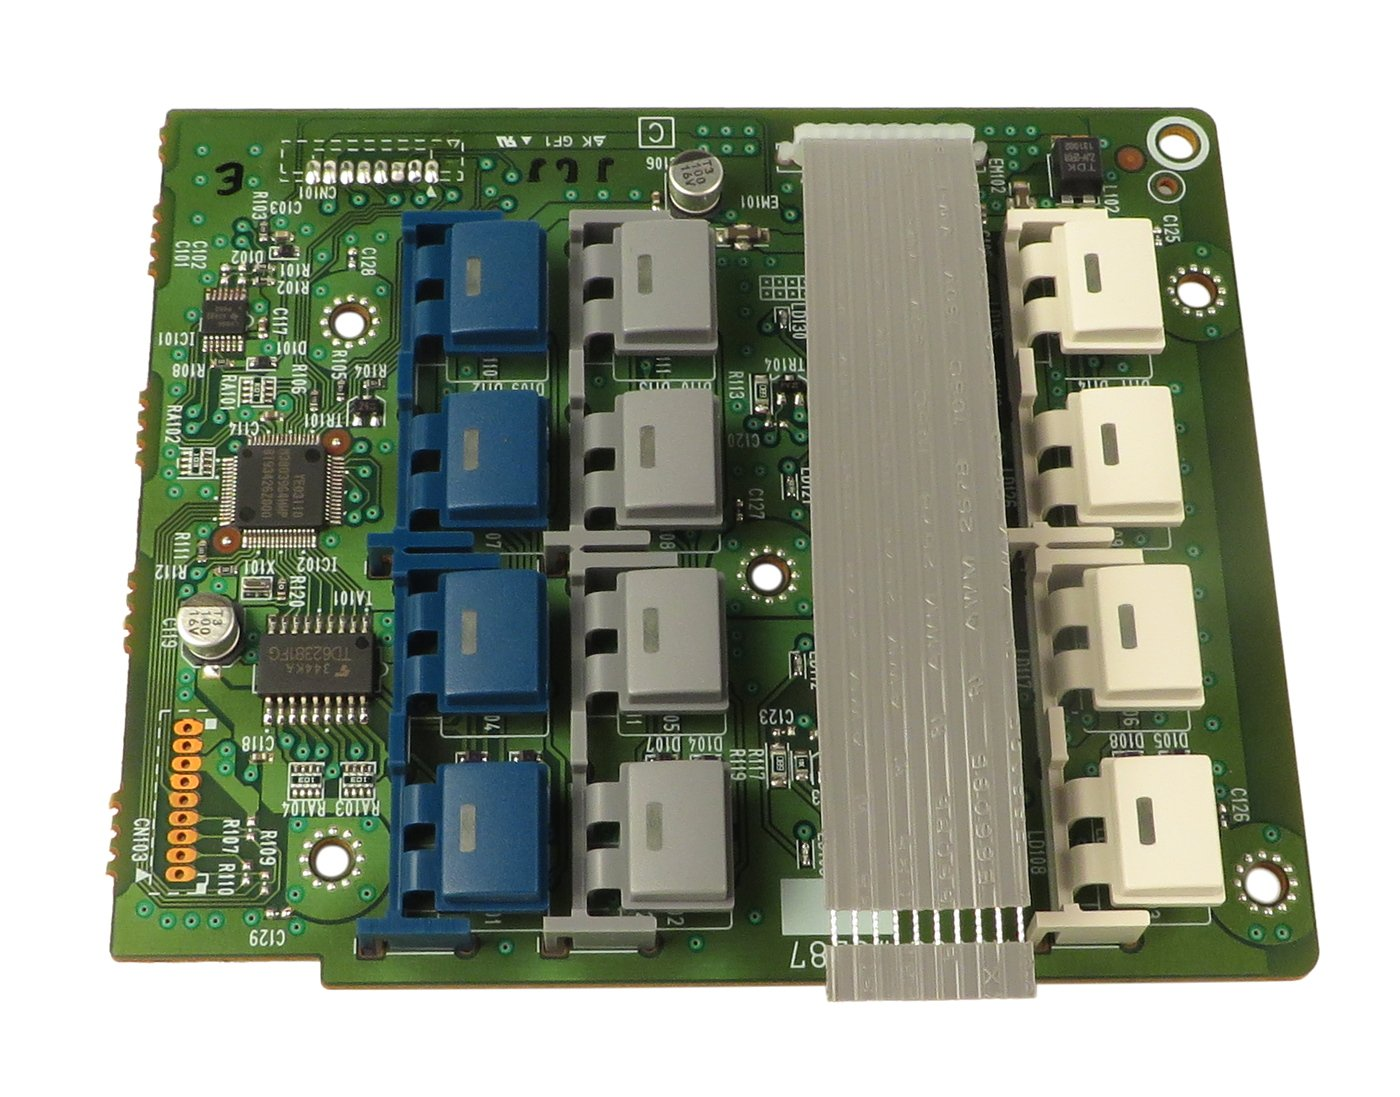 PNMS4 PCB for M7CL-32 and M7CL-48